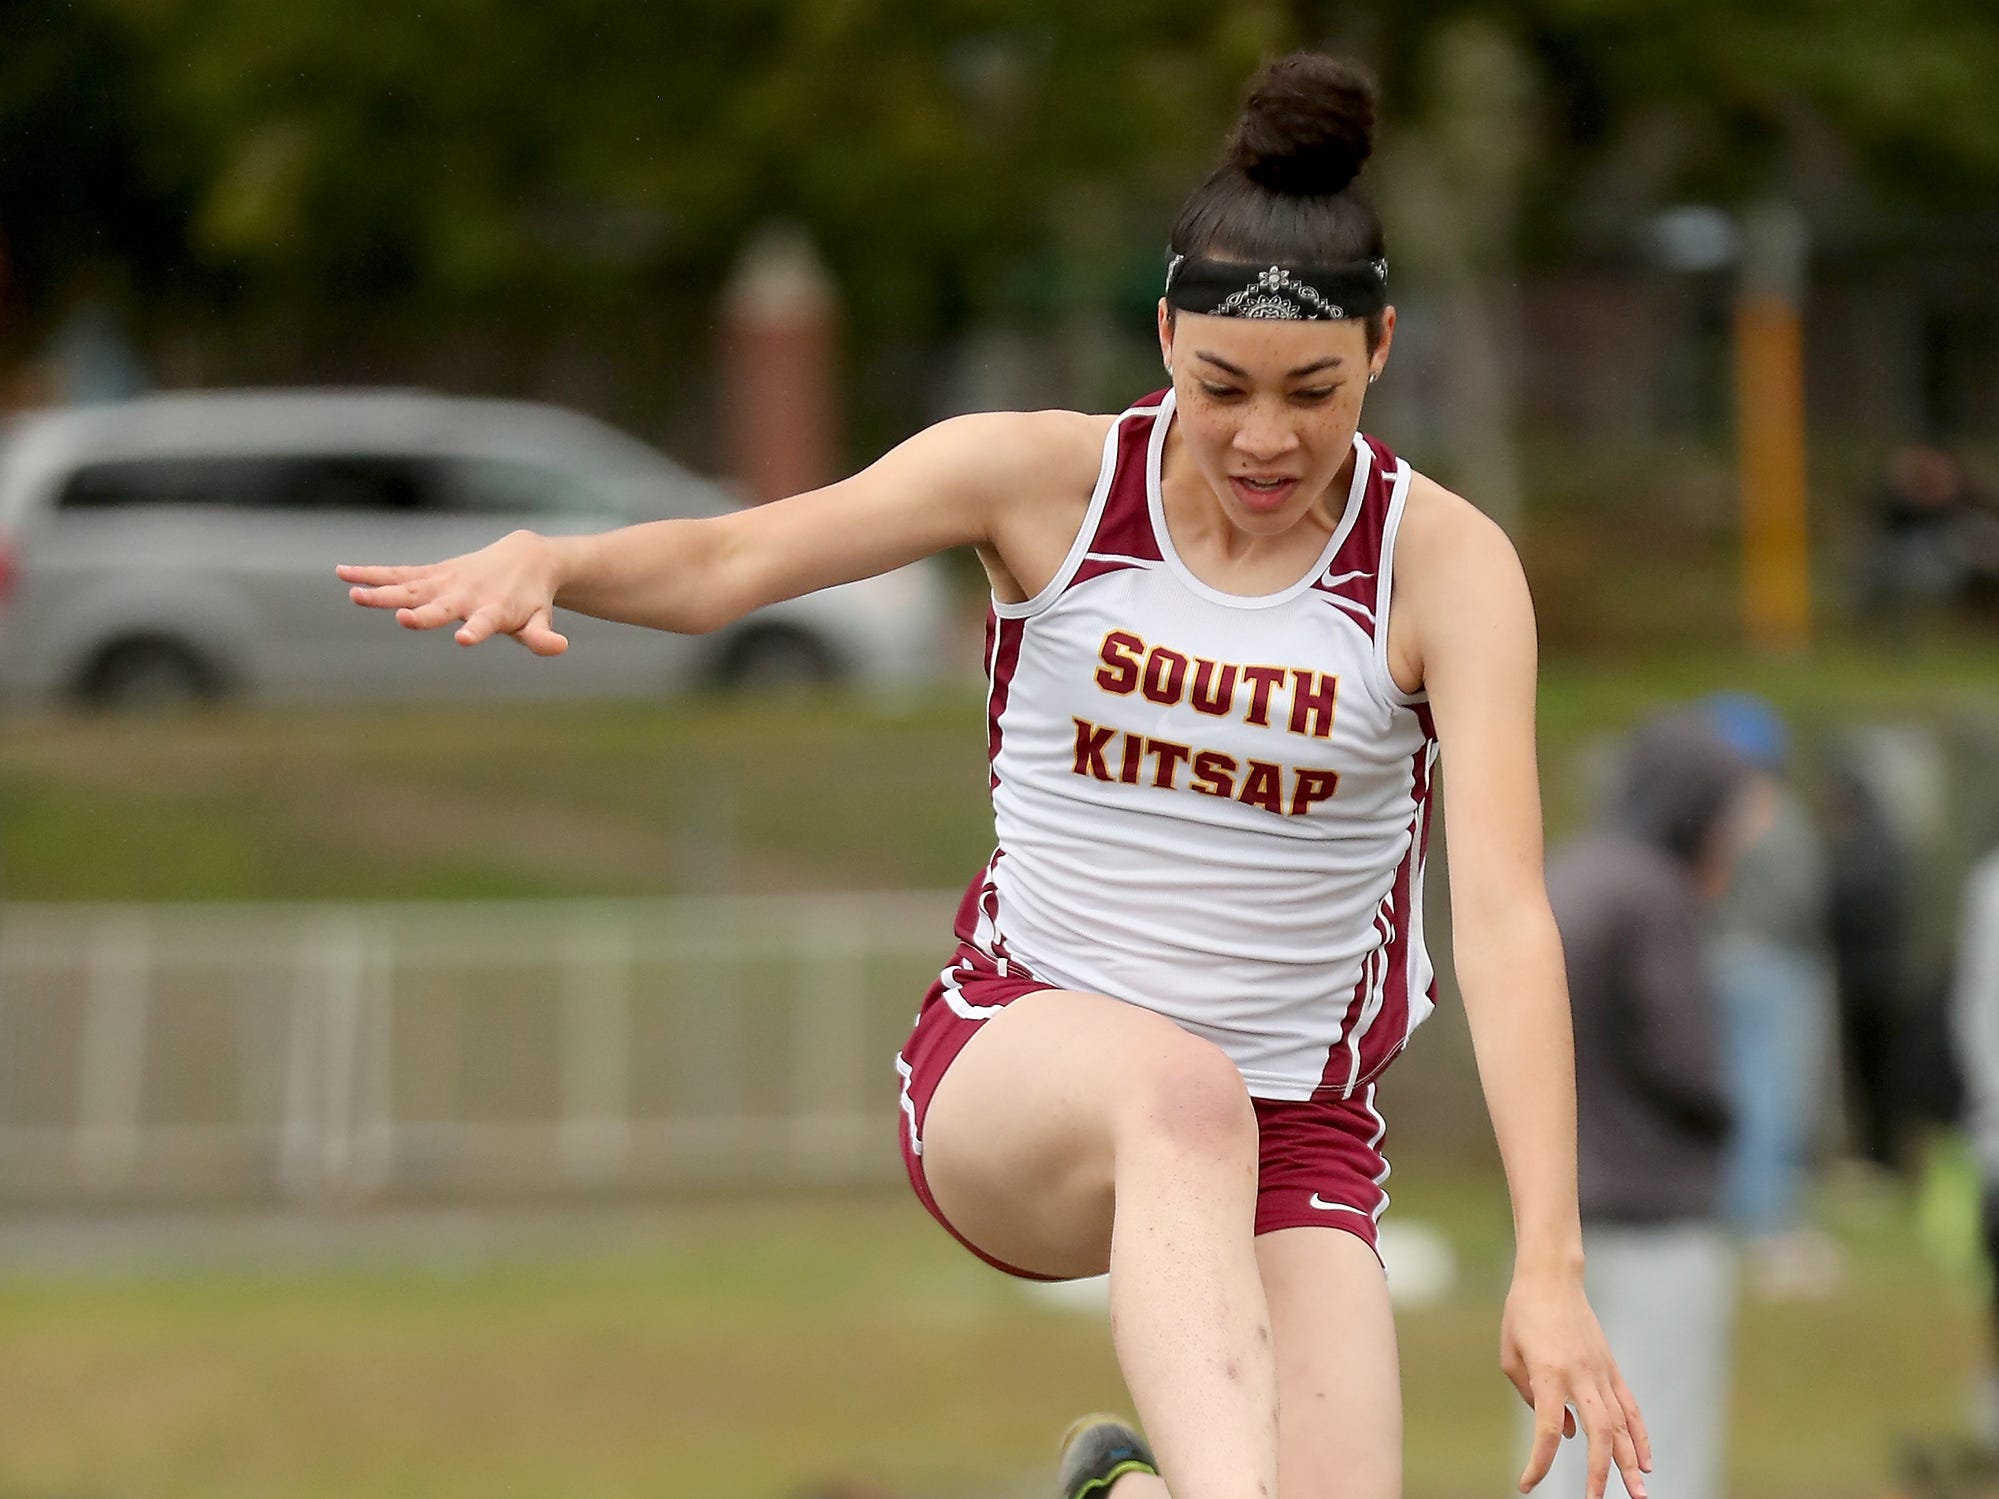 South Kitsap's Audrey Green competes in the long jump at the Lil' Norway Invitational at North Kitsap High School in Poulsbo on Saturday, April13, 2019.